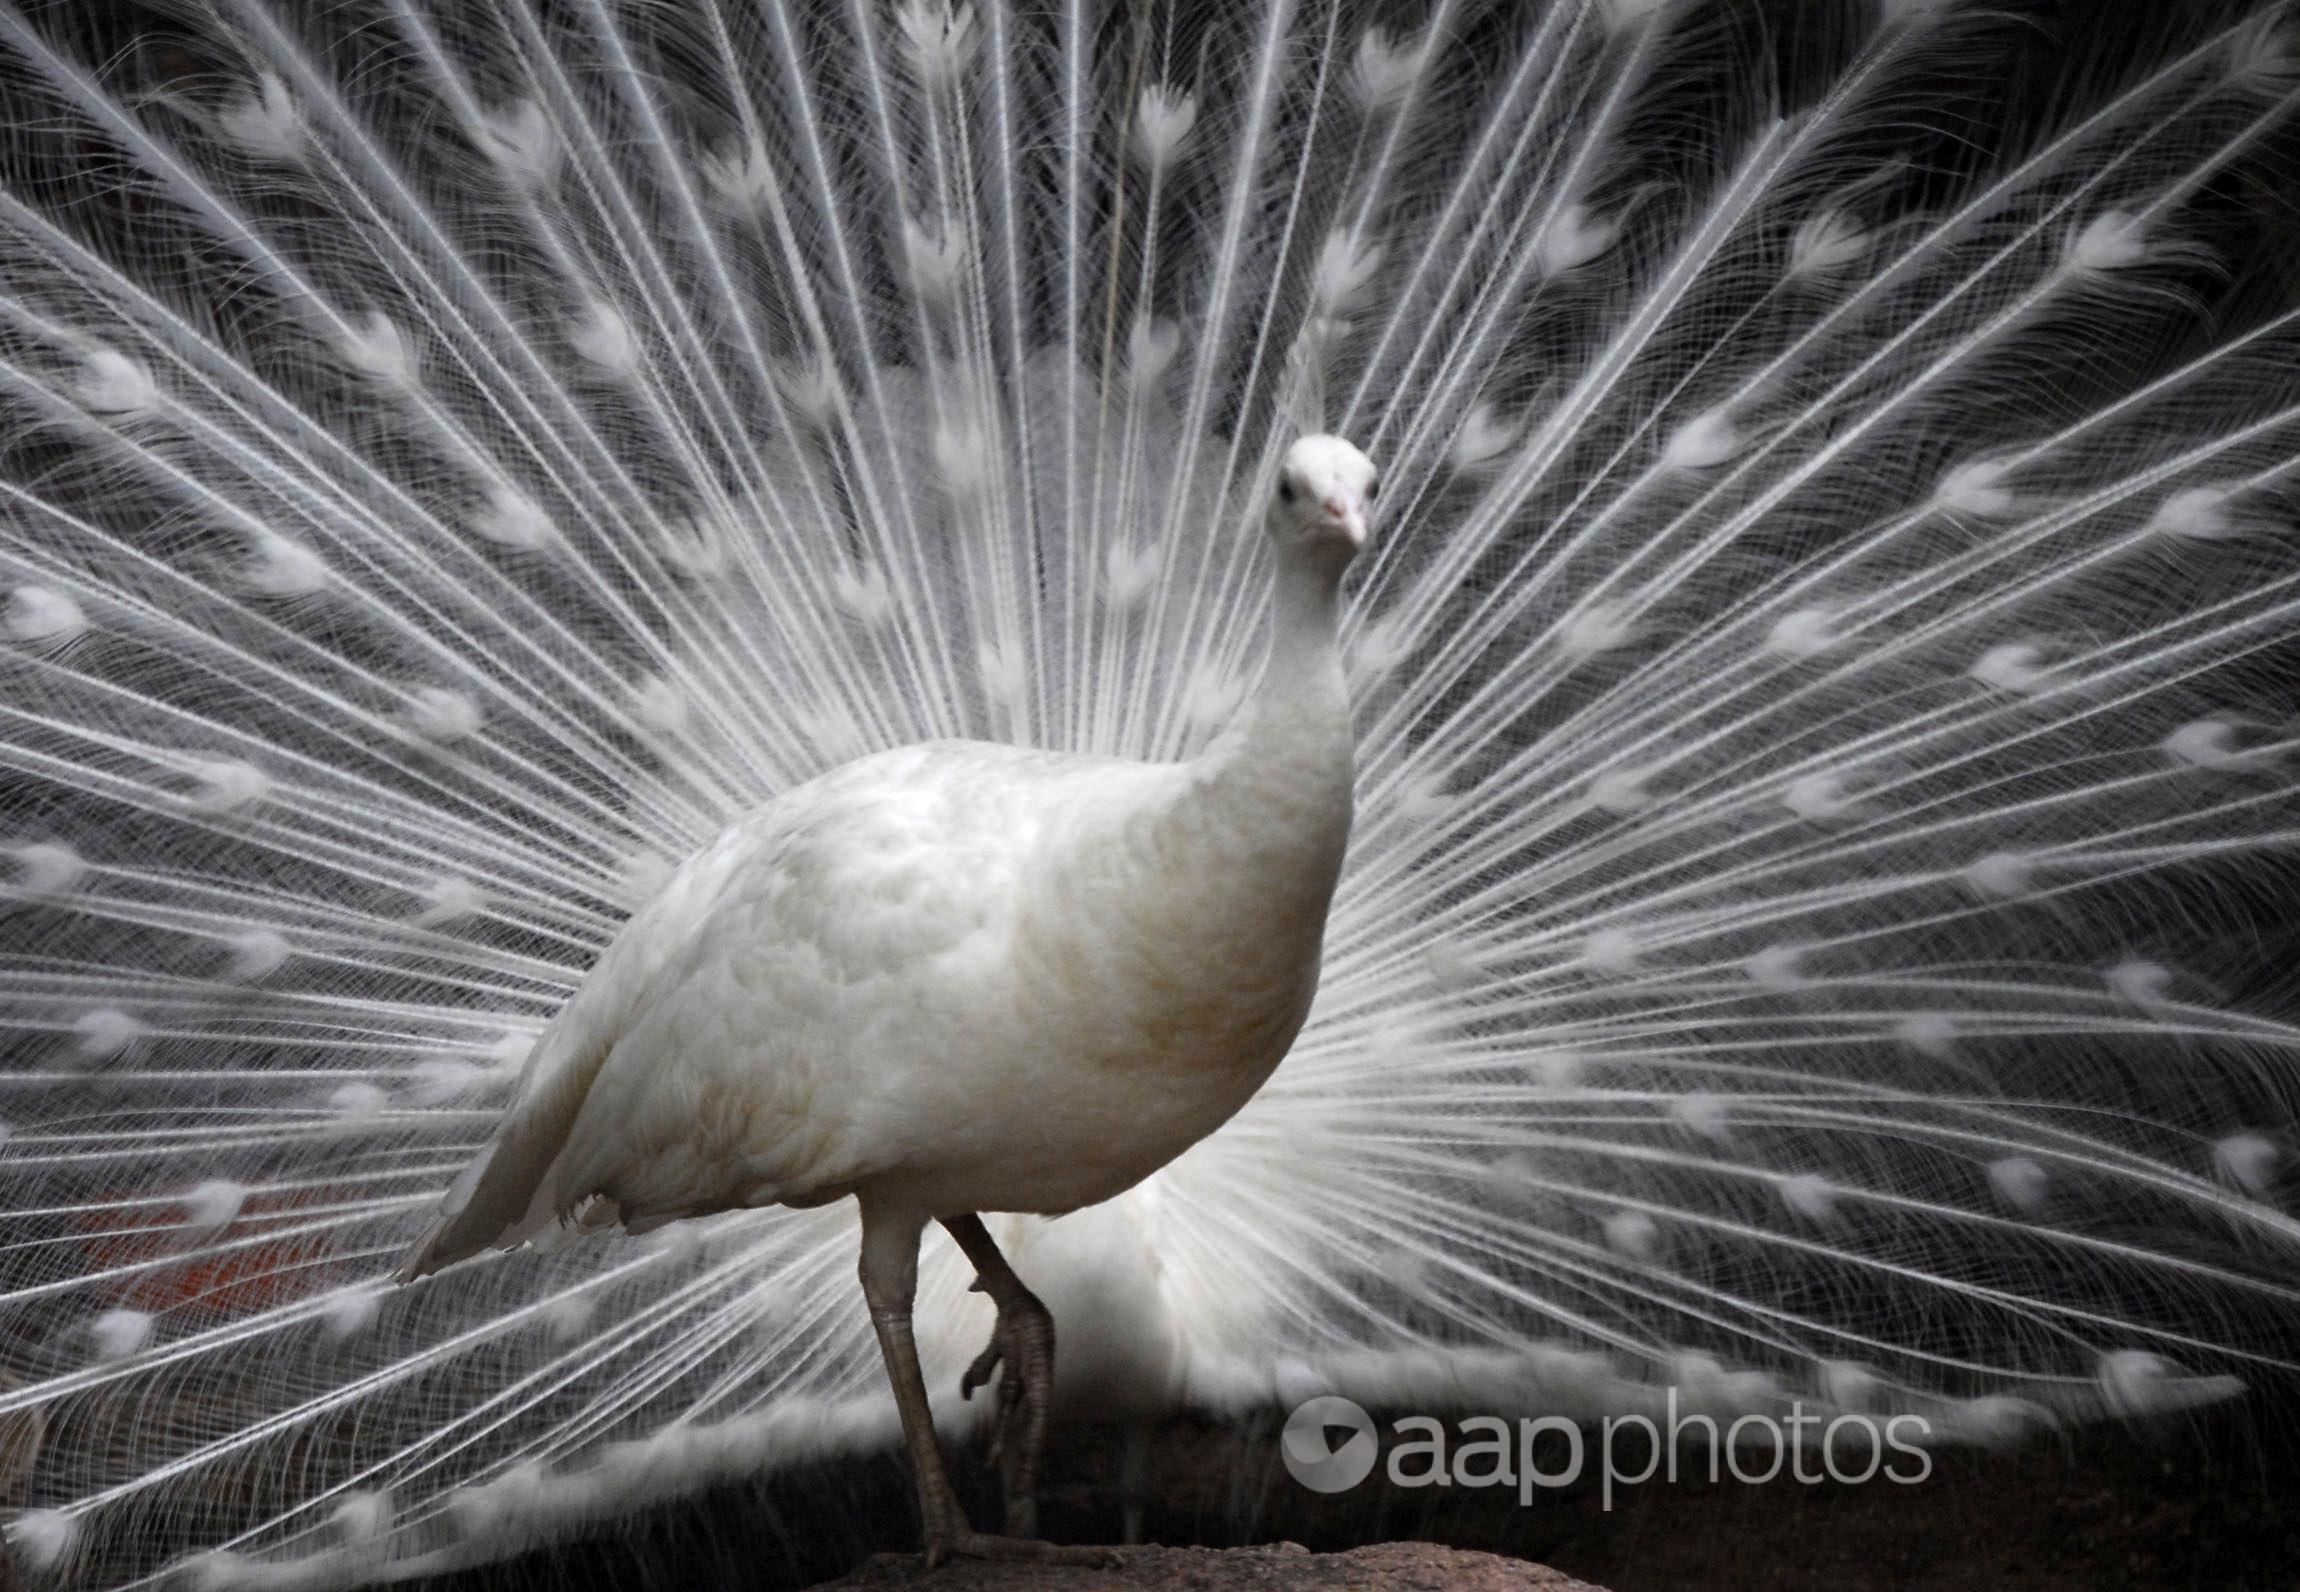 A white peacock displays its plumage.